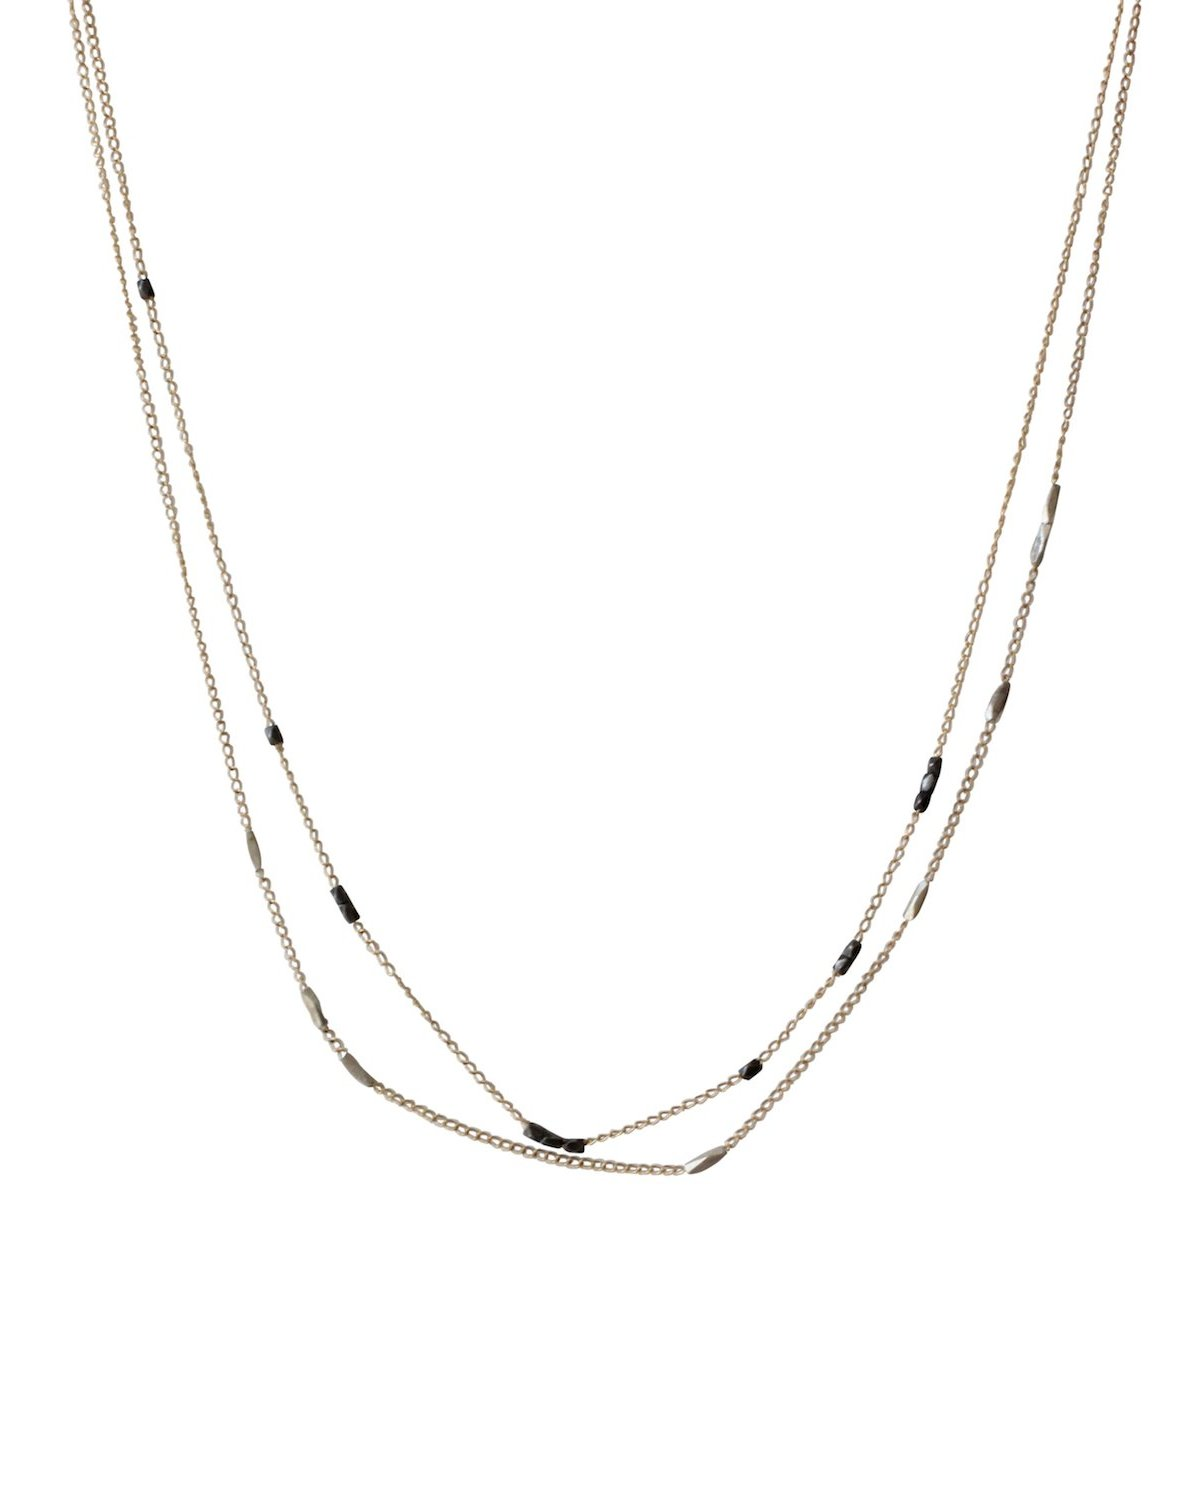 Double Strand Beaded Chain Necklace in Yellow Gold